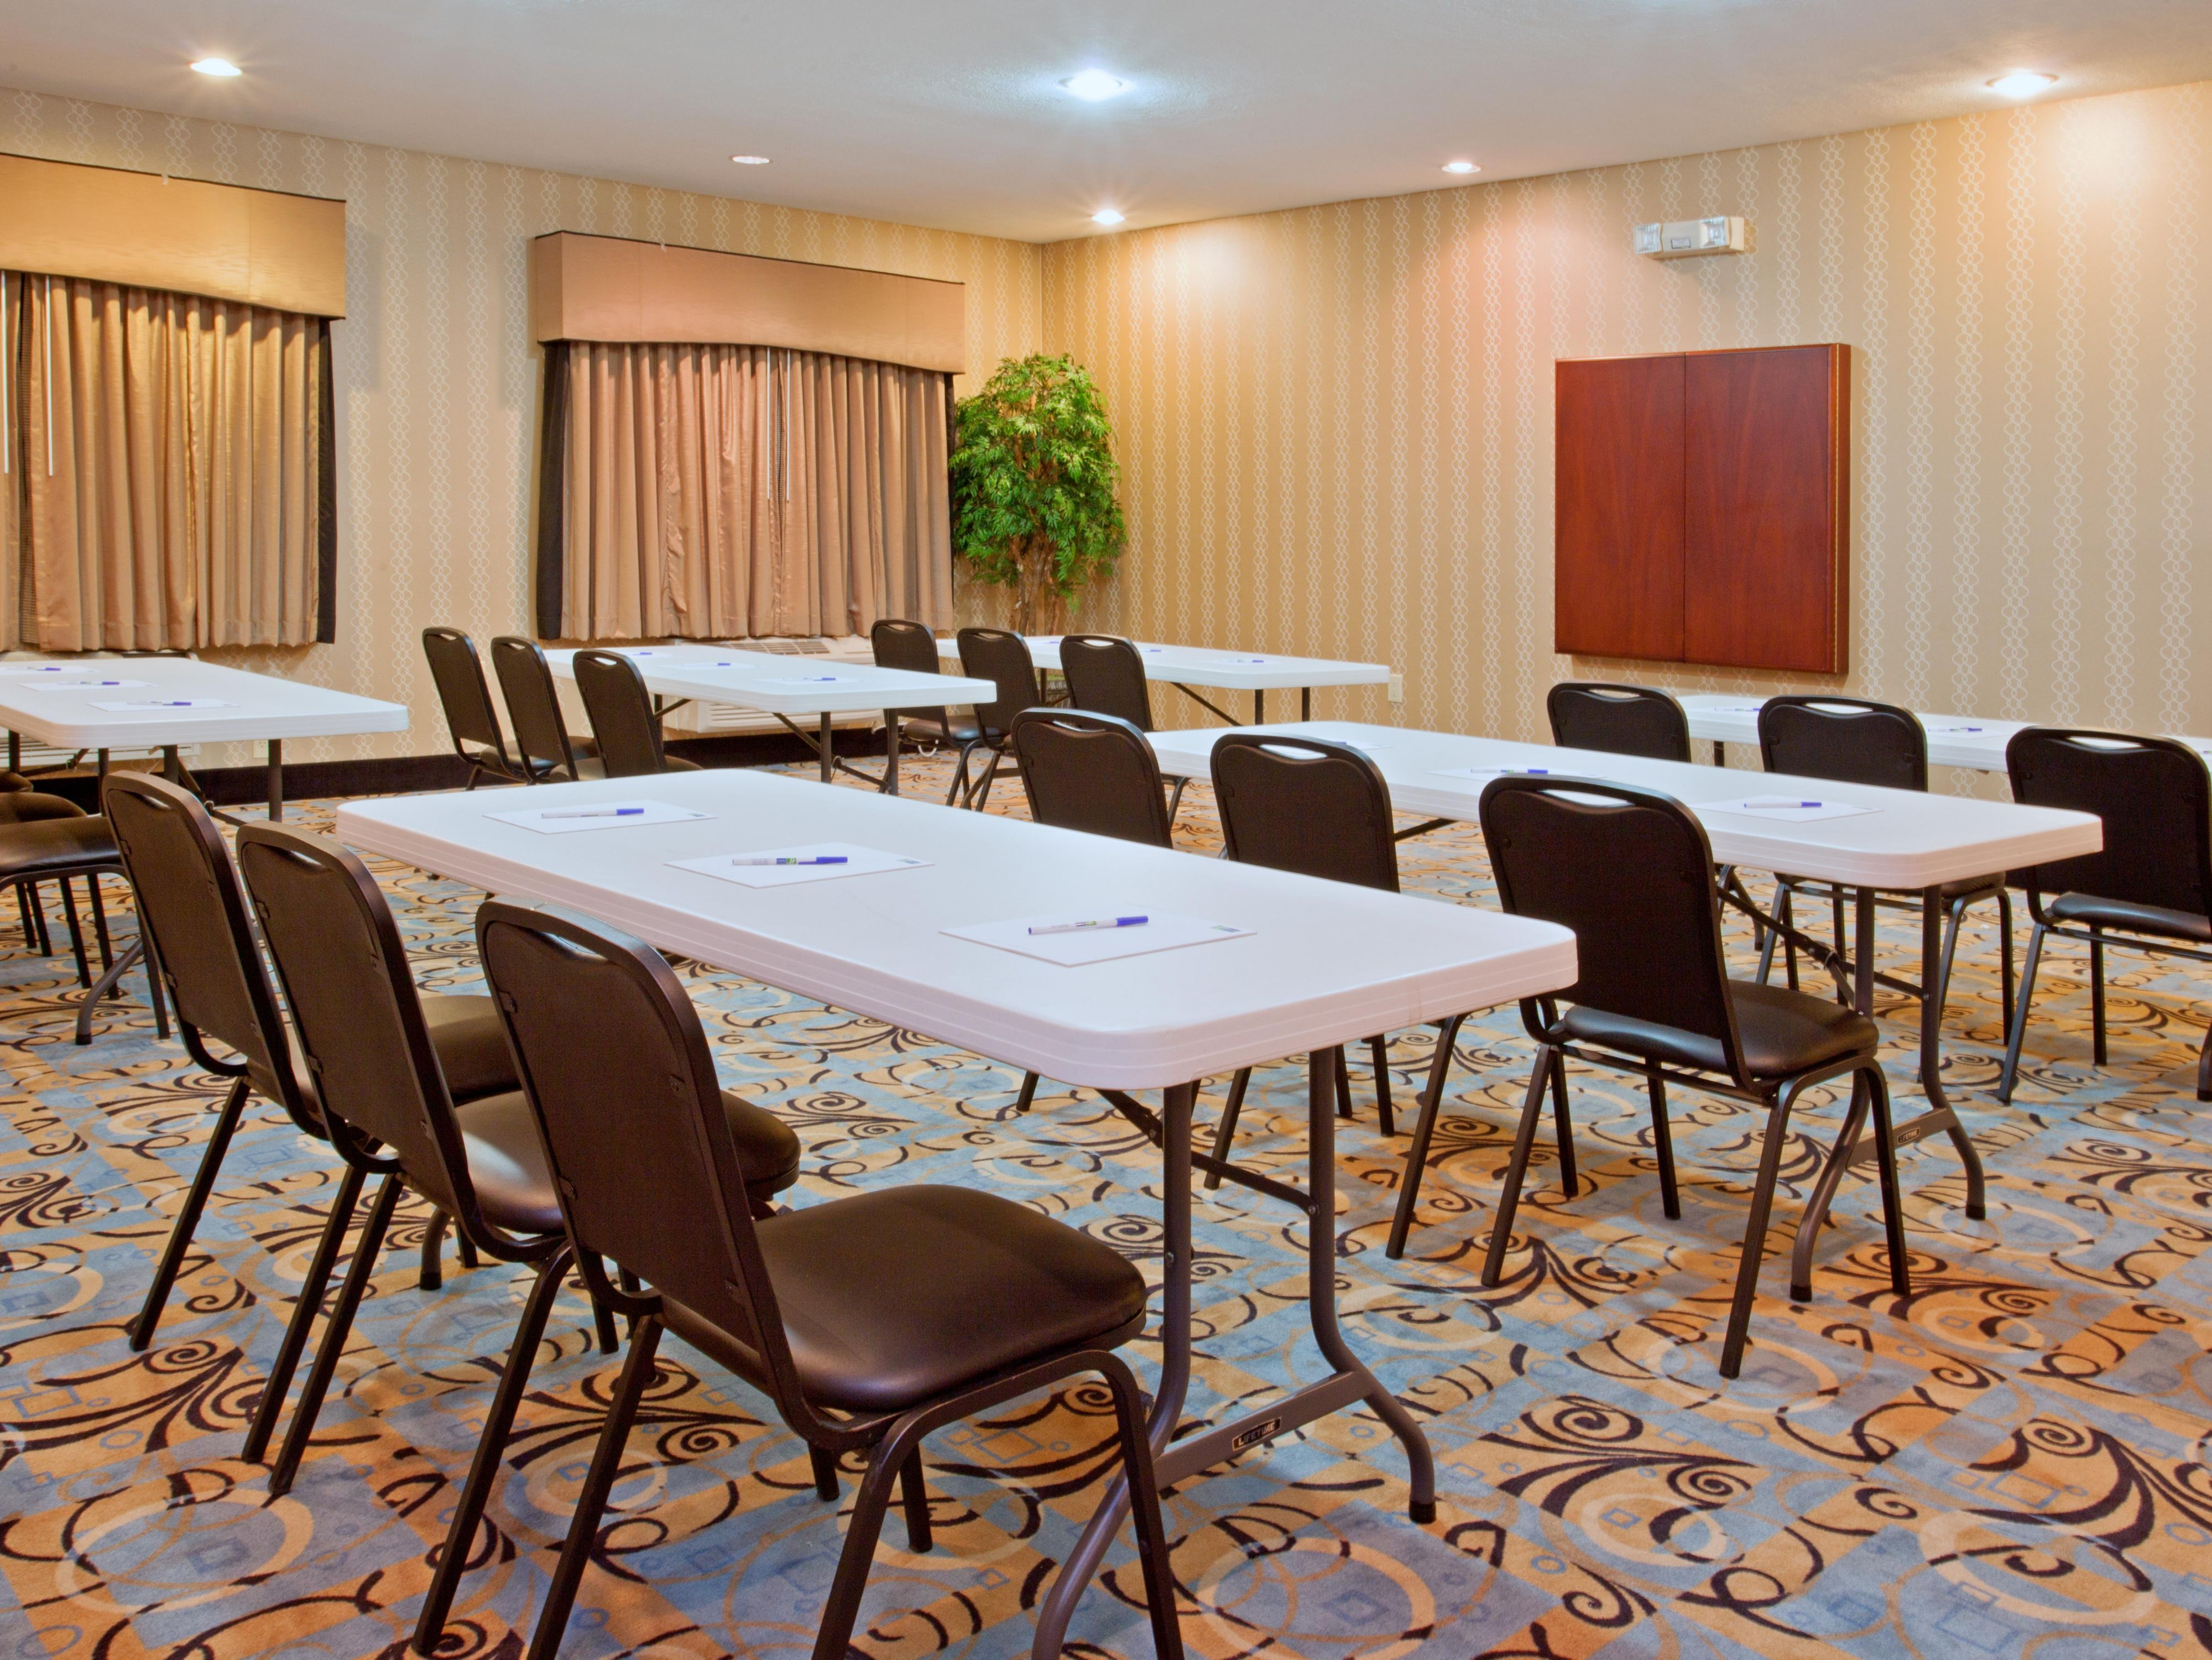 Meeting Room at Holiday Inn Express Houston N-1960 Champions Area